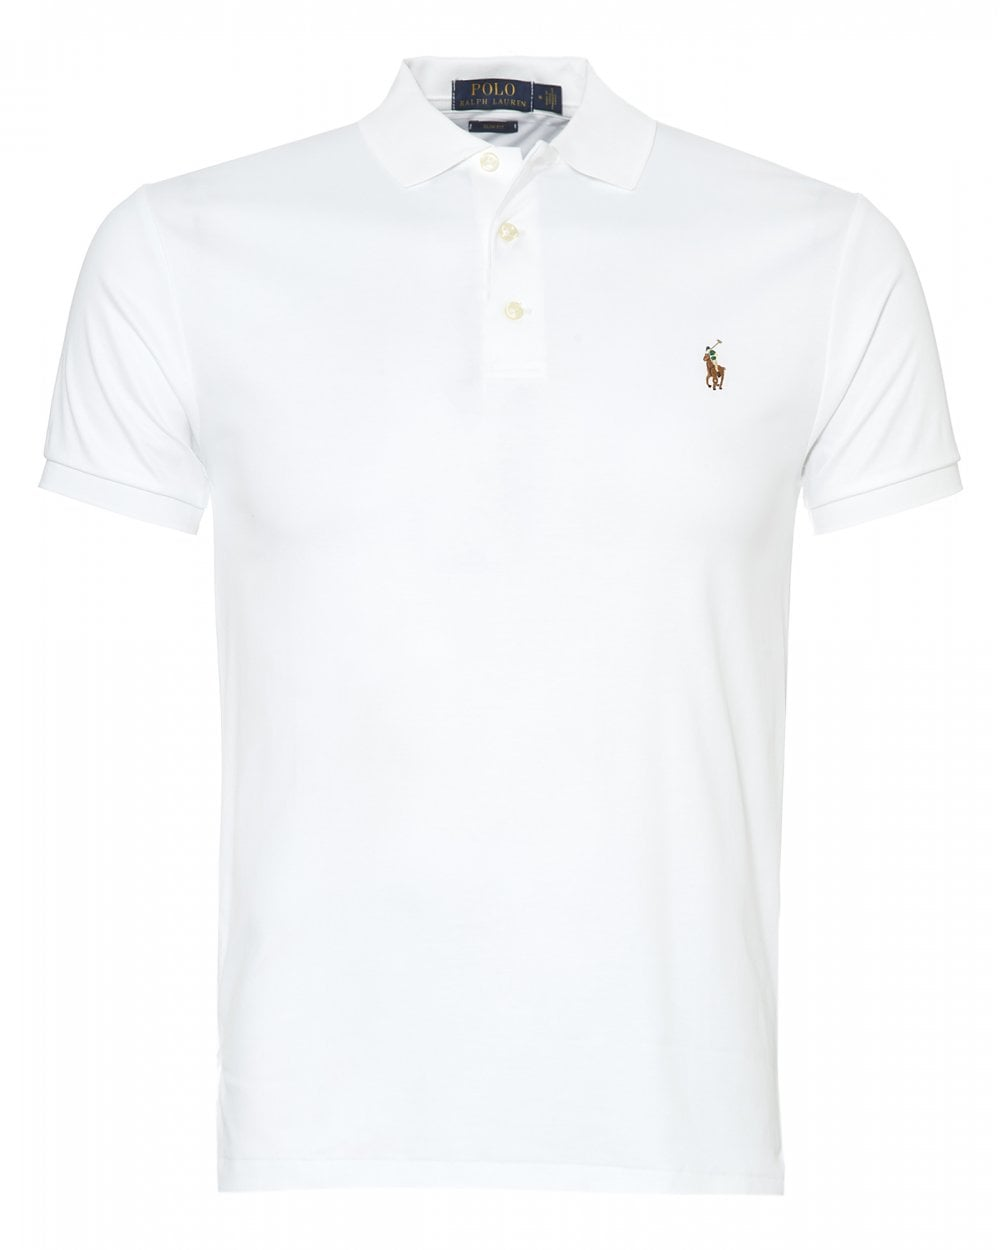 a916863c Ralph Lauren Mens Pima Cotton Polo, Slim Fit White Polo Shirt